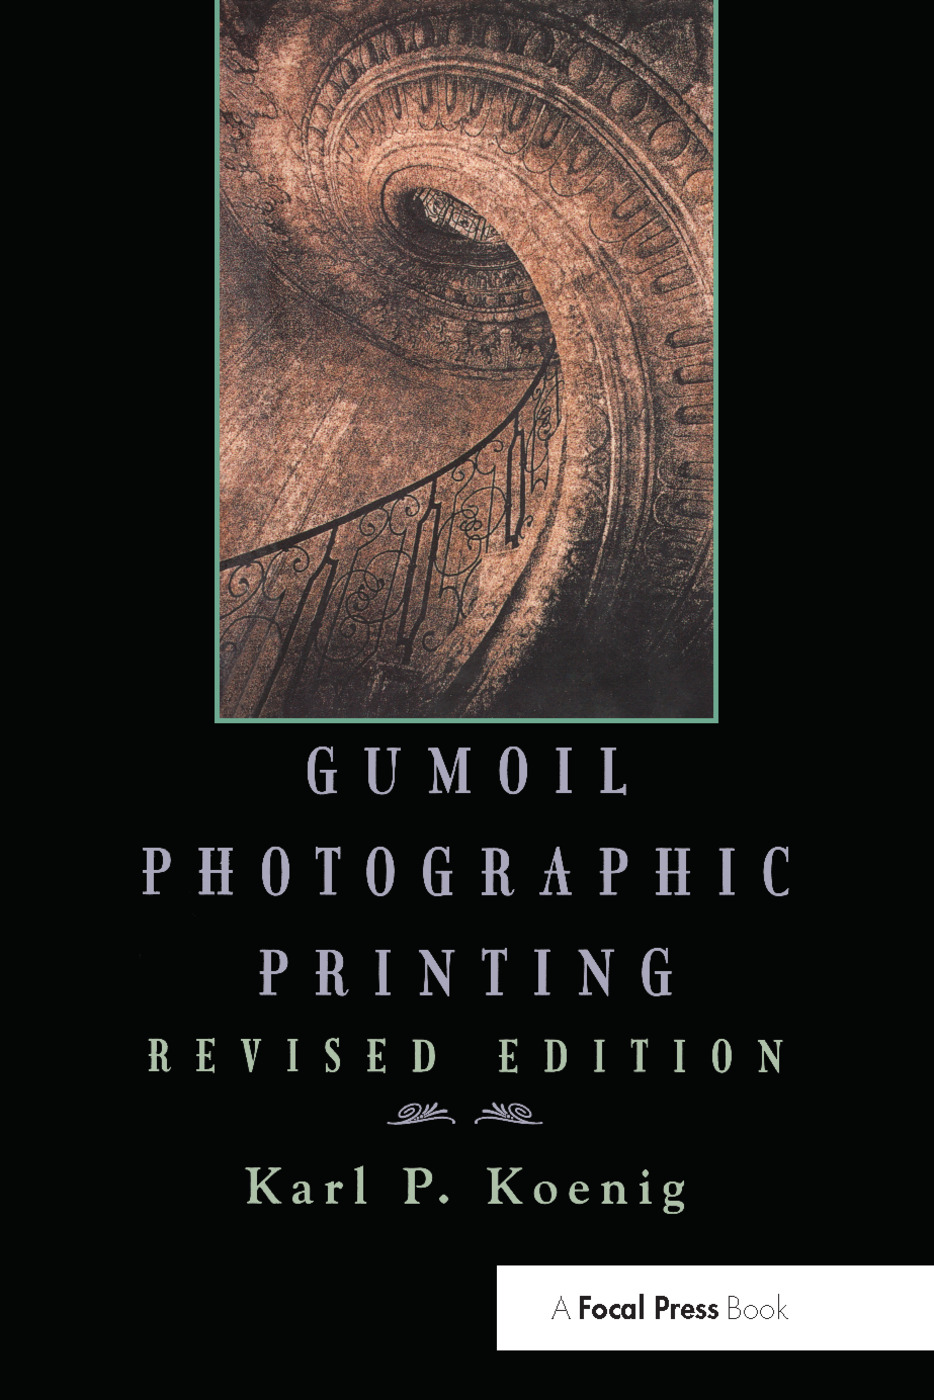 Gumoil Photographic Printing, Revised Edition book cover